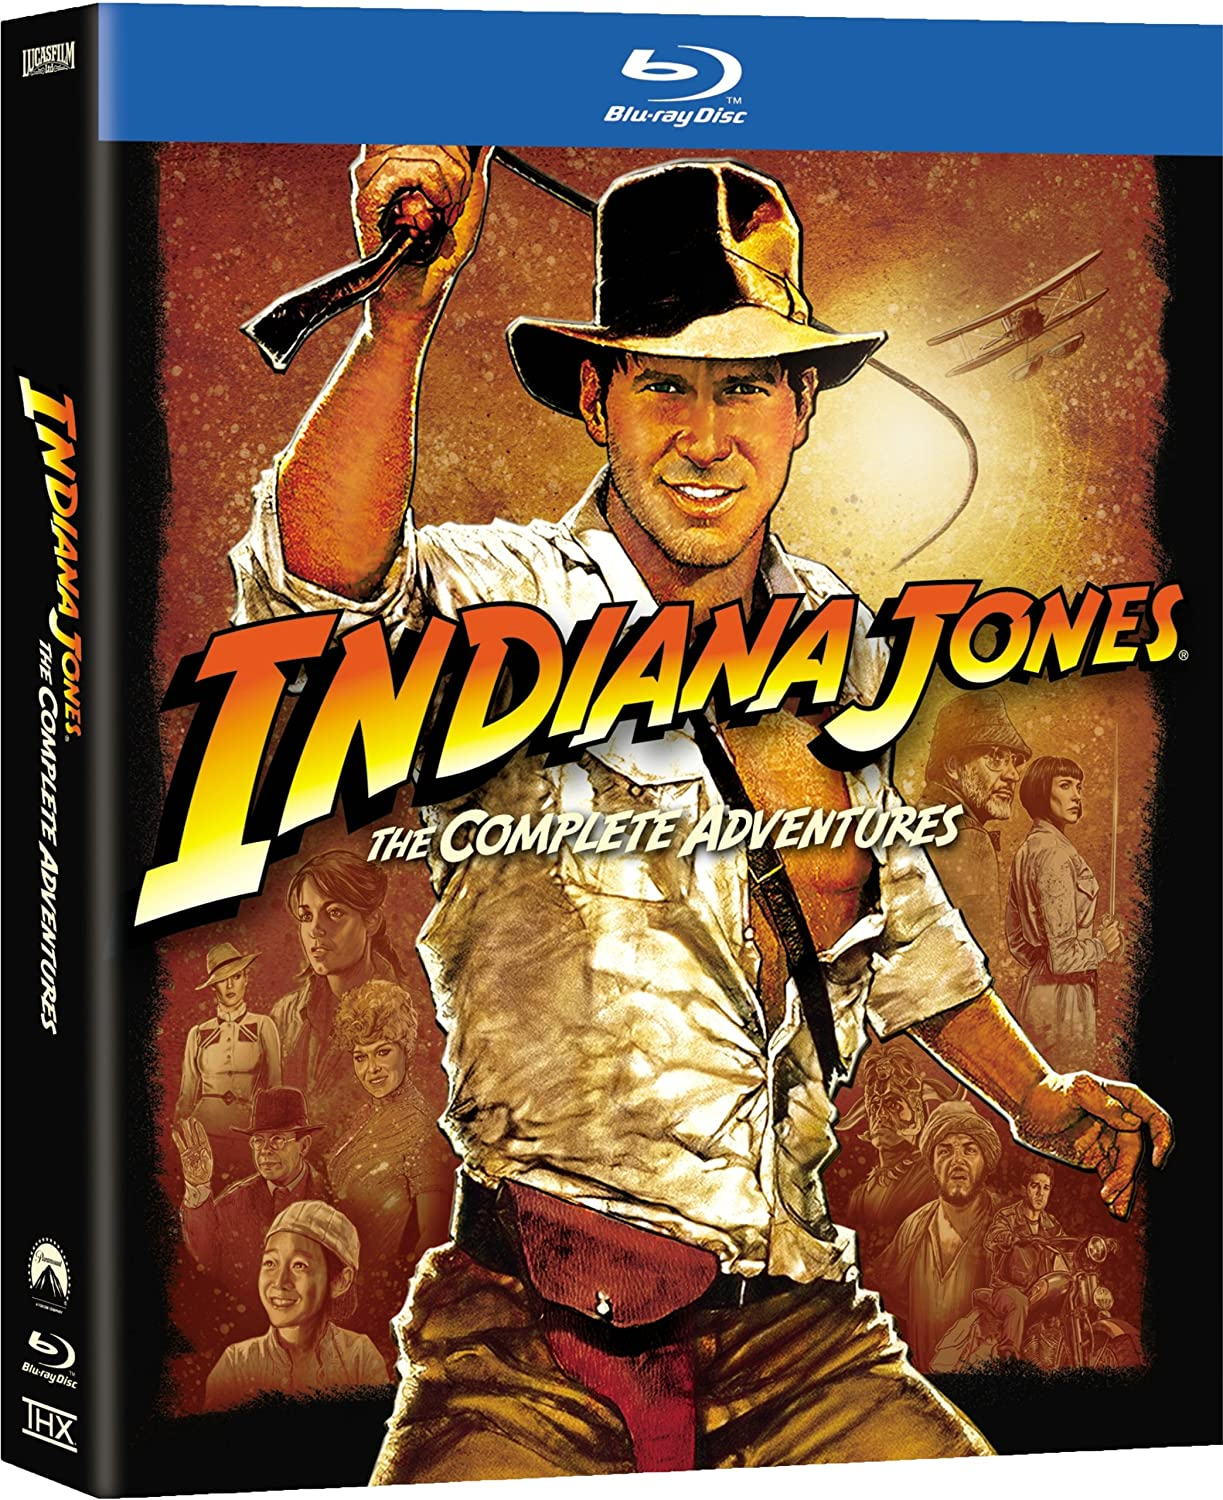 Indiana Jones: The Complete Adventures [Blu-ray] (Bilingual) Harrison Ford Karen Allen Sean Connery Shia LaBeouf